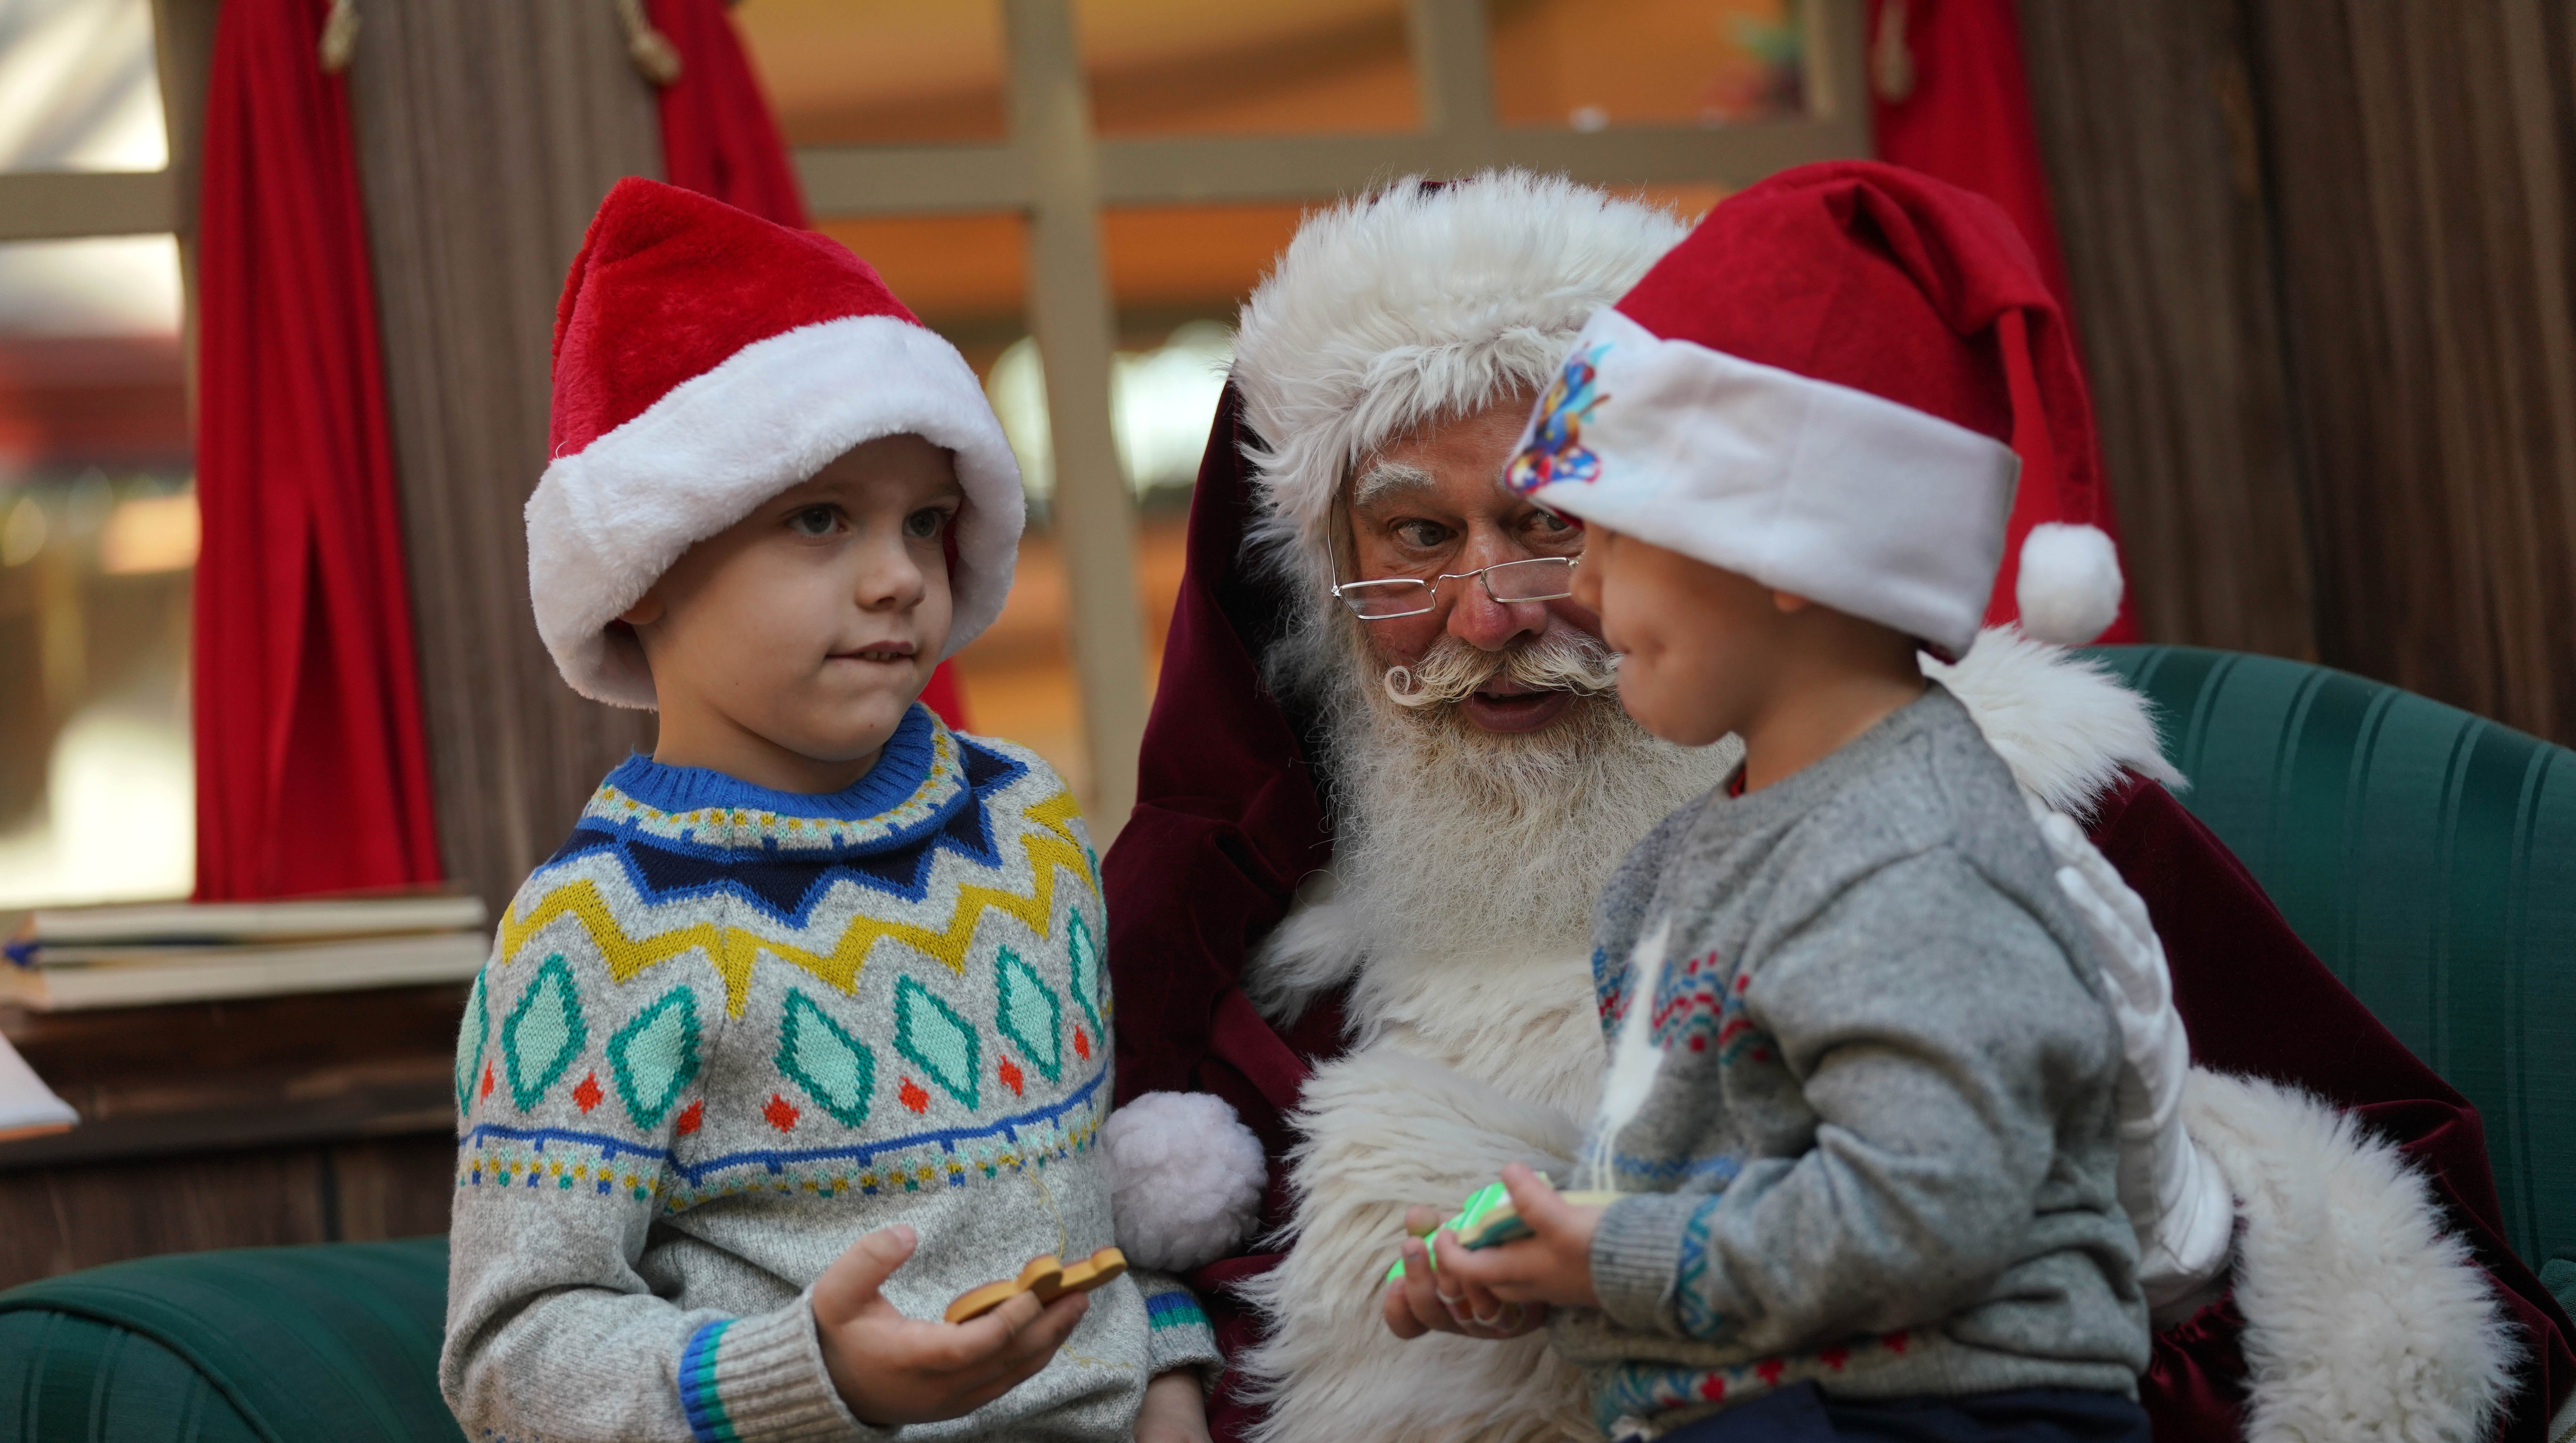 'The real deal': The story behind the Concord Mall Santa who melted our hearts on Facebook